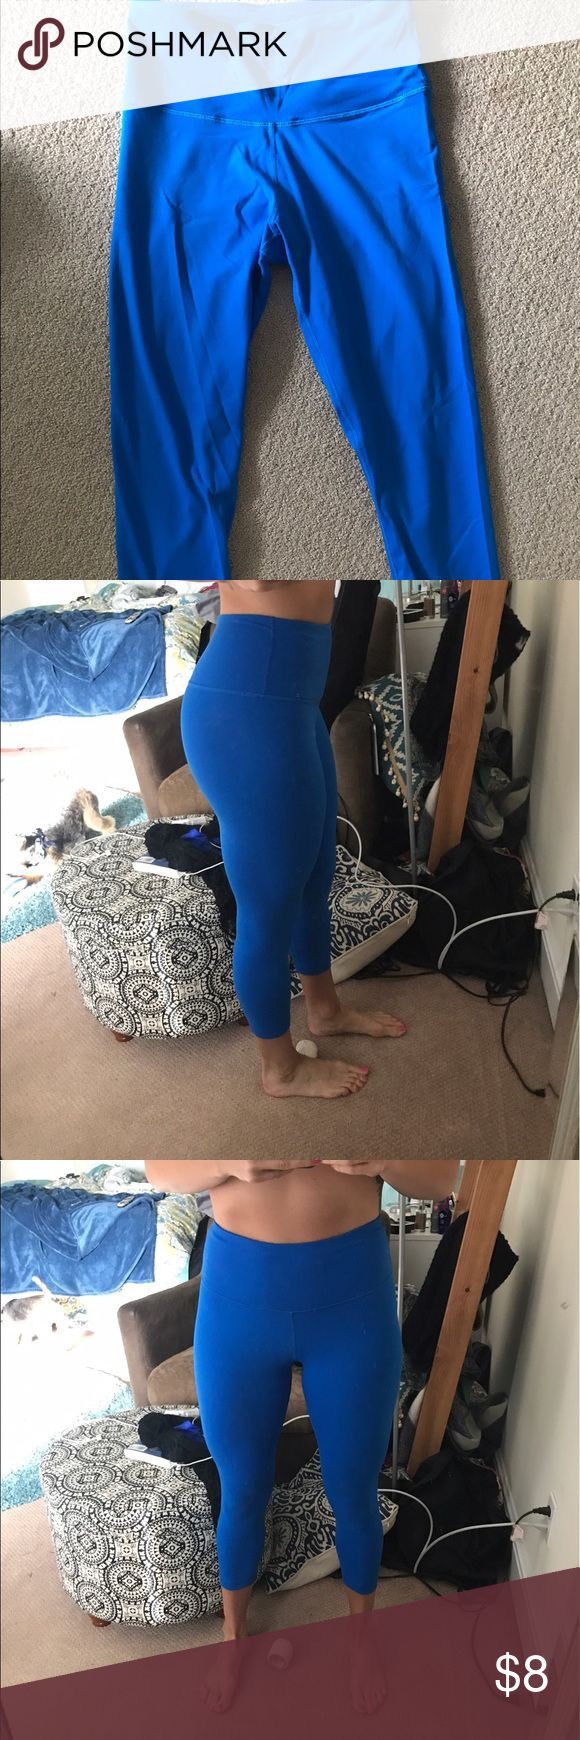 90 degree by Reflex high waisted cropped leggings High waist,cropped 90 degree by Reflex Pants Leggings